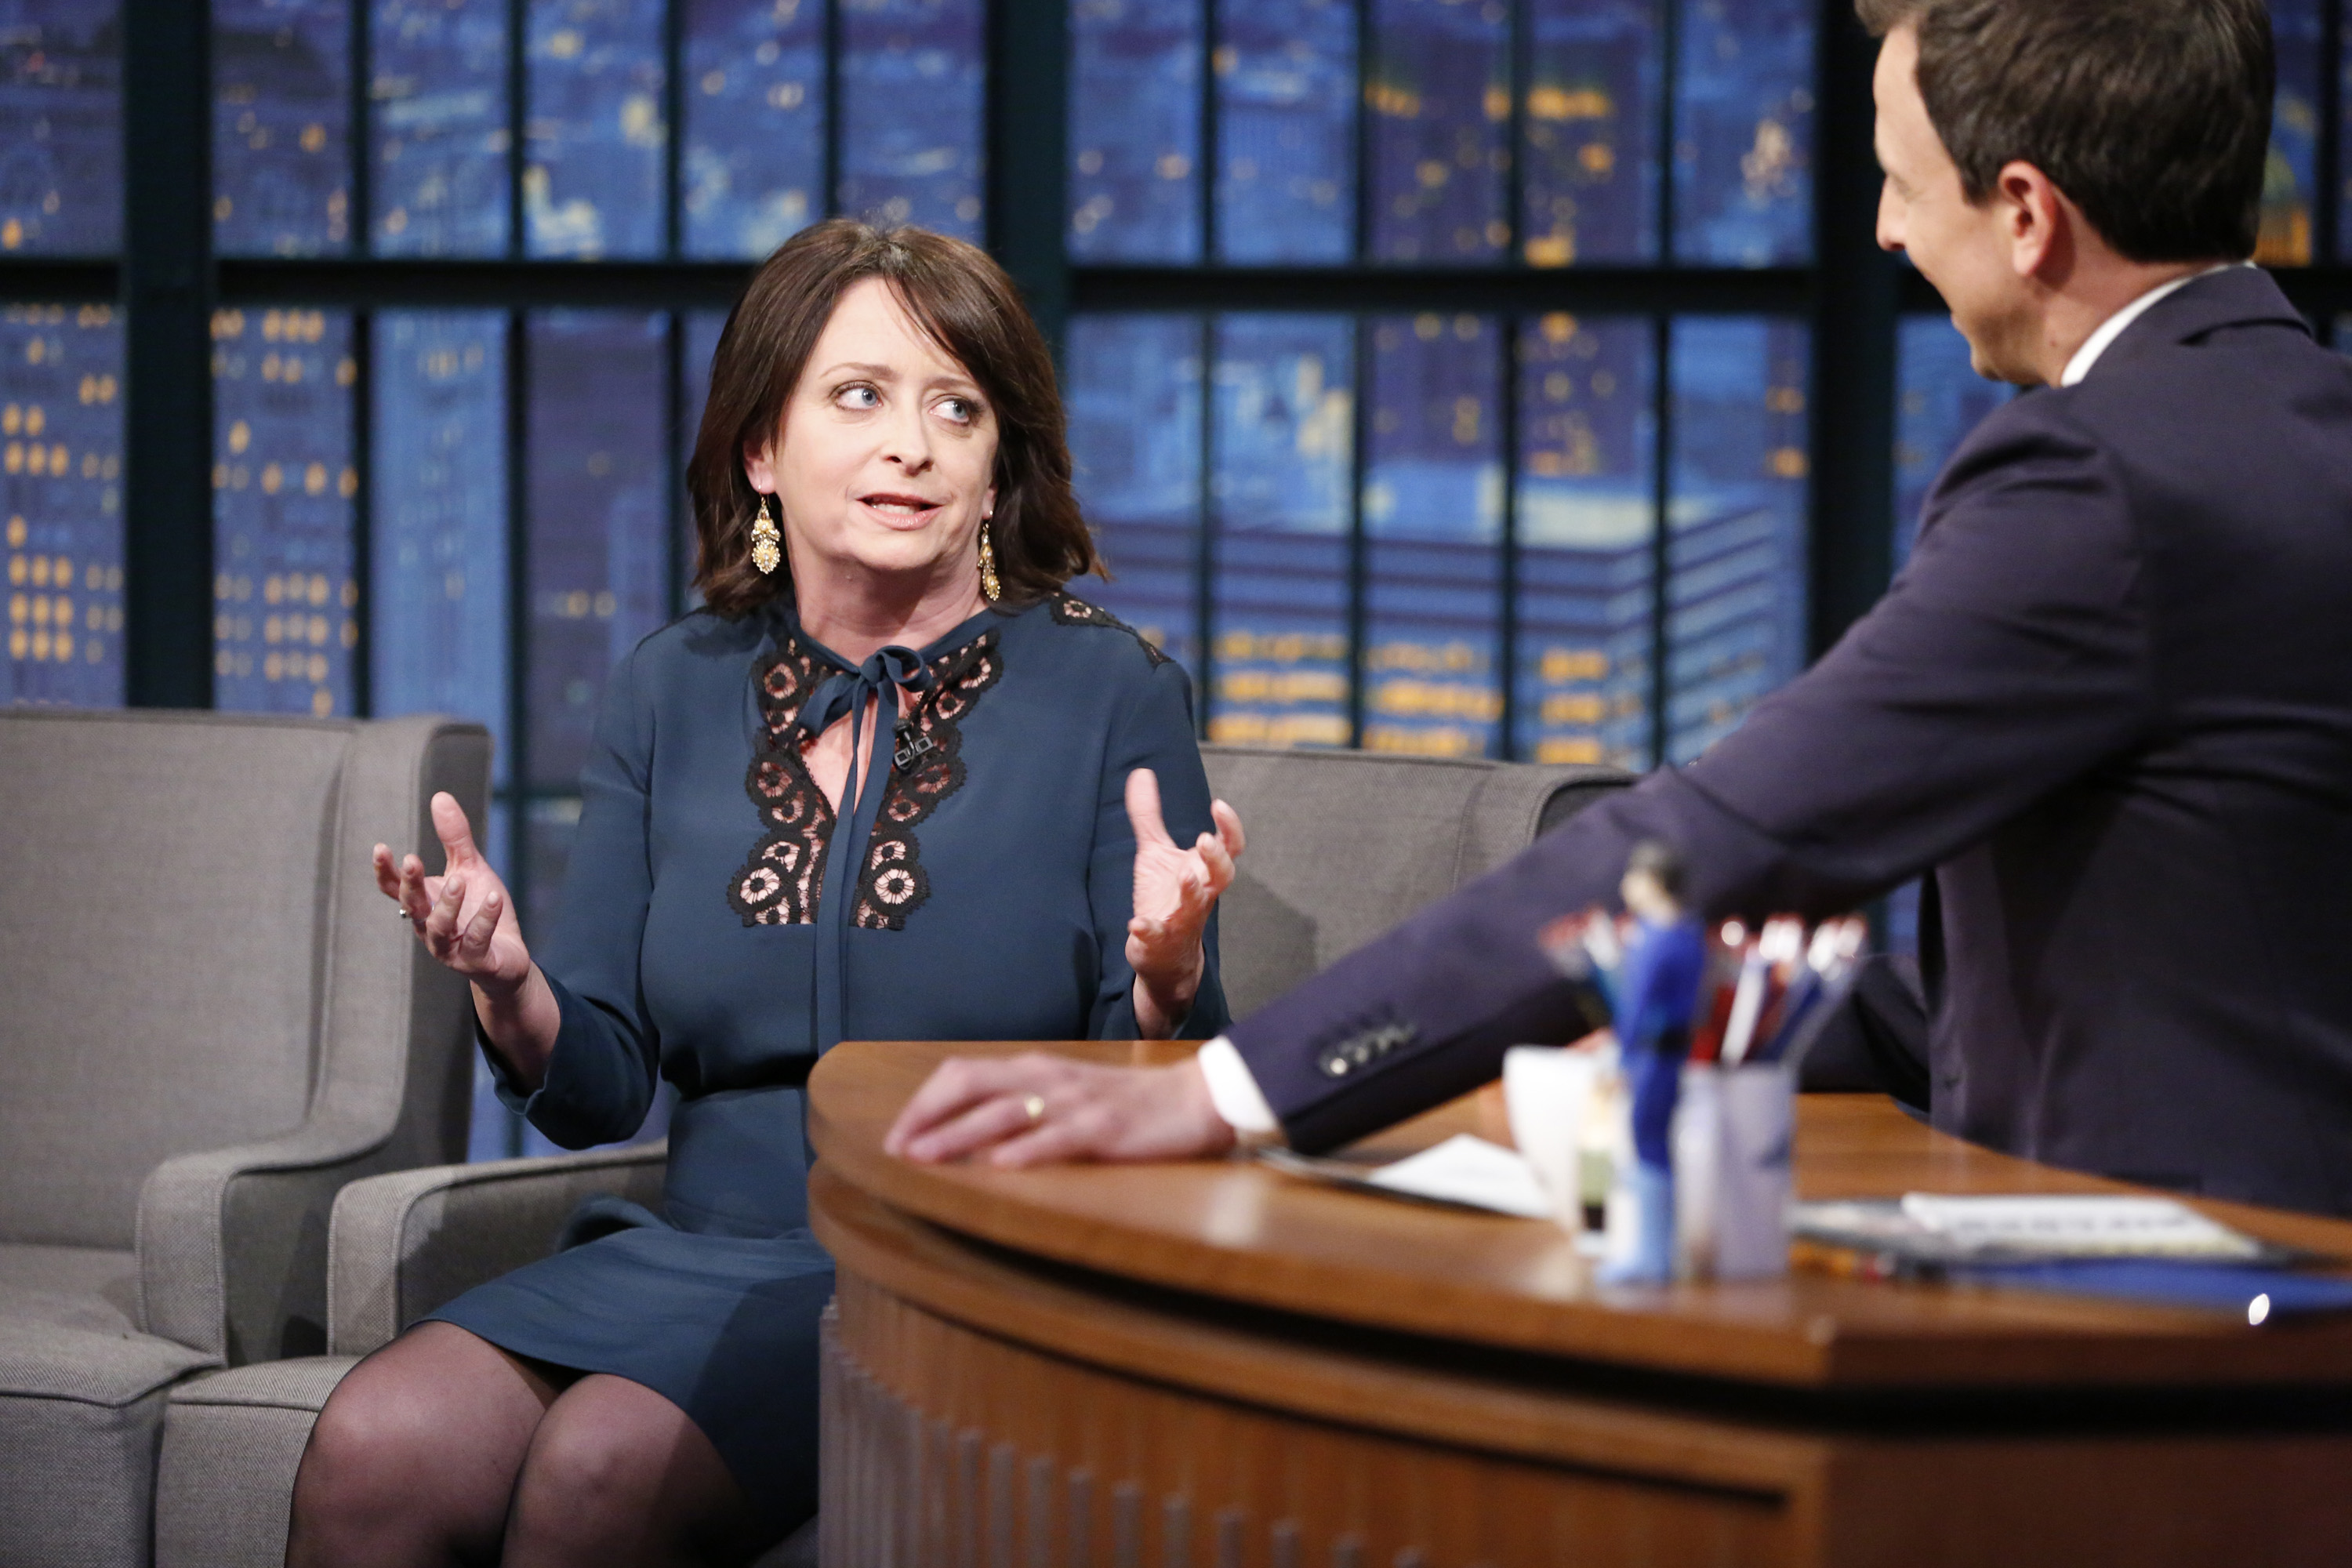 LATE NIGHT WITH SETH MEYERS -- Episode 277 -- Pictured: (l-r) Comedian Rachel Dratch during an interview with host Seth Meyers on October 26, 2015 -- (Photo by: Lloyd Bishop/NBC)